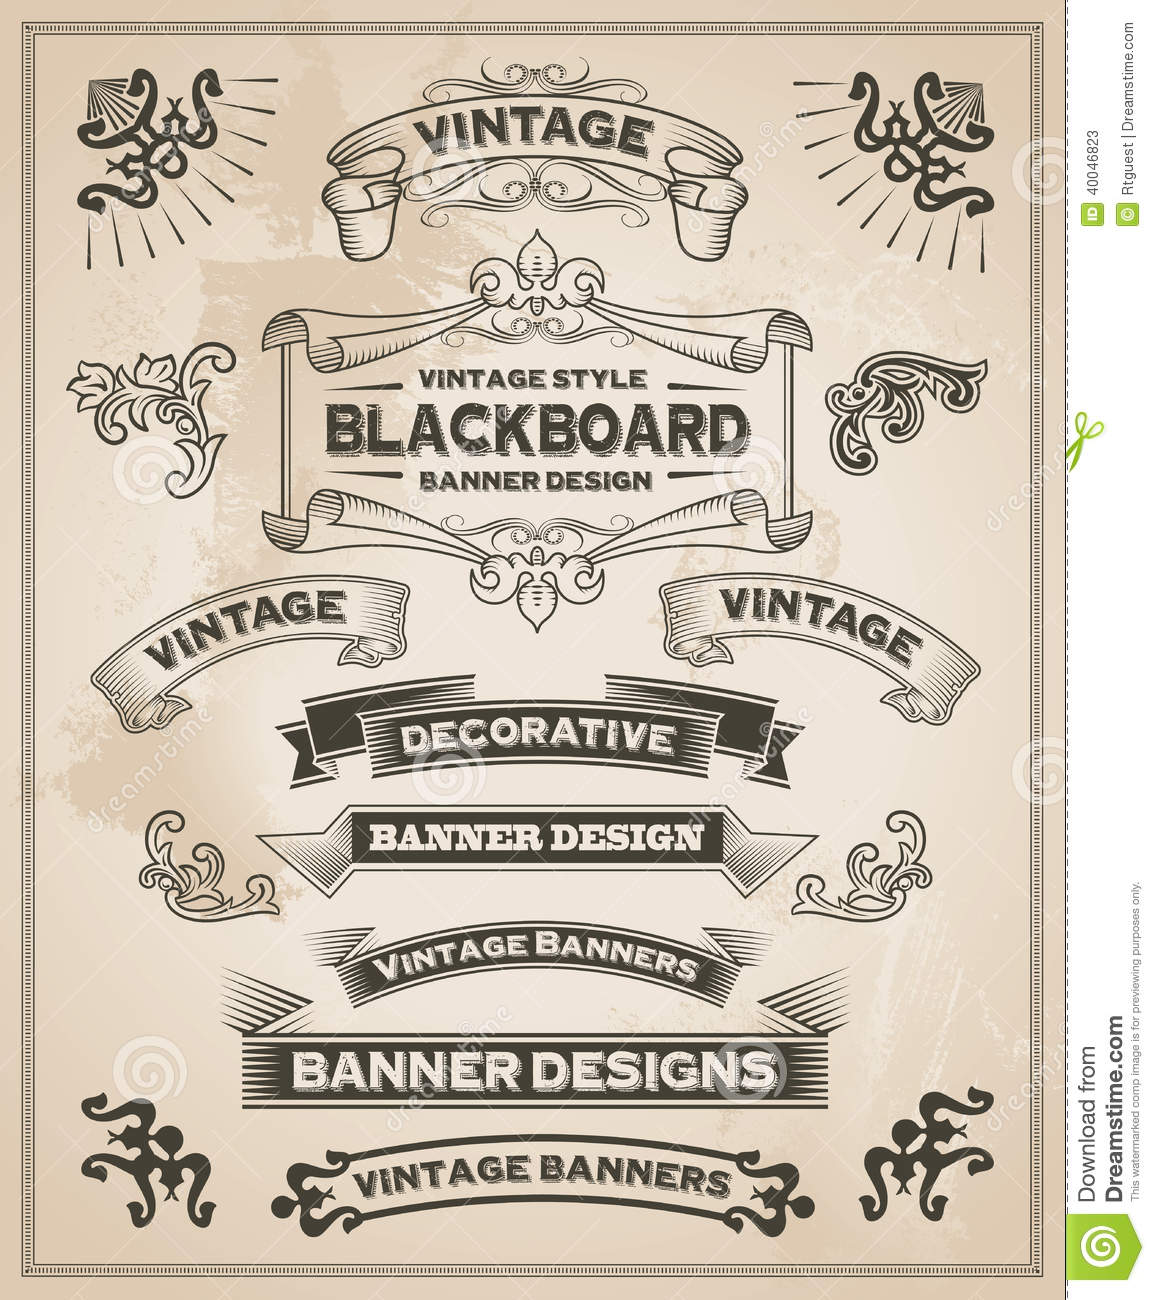 Hand Drawn Vintage Banner Designs